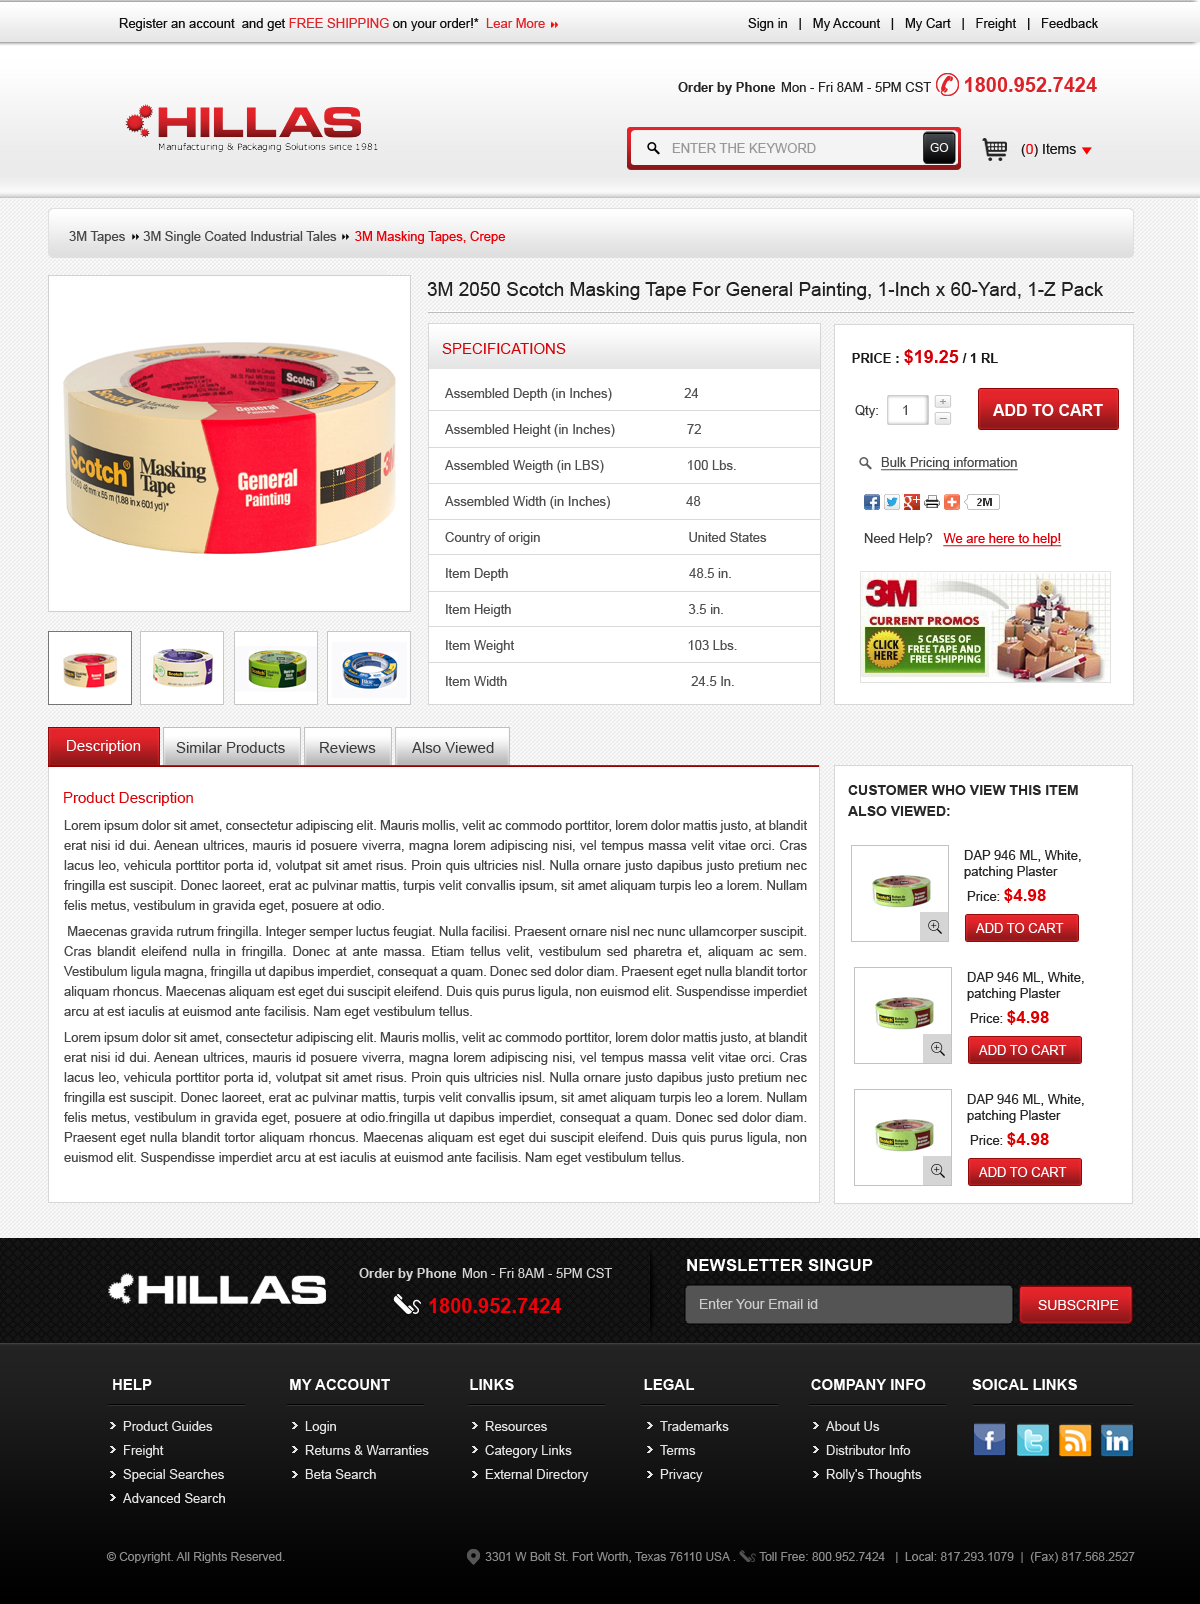 Web Page Design by Vishwa Km - Entry No. 4 in the Web Page Design Contest New Web Page Design for Industrial Distributor.